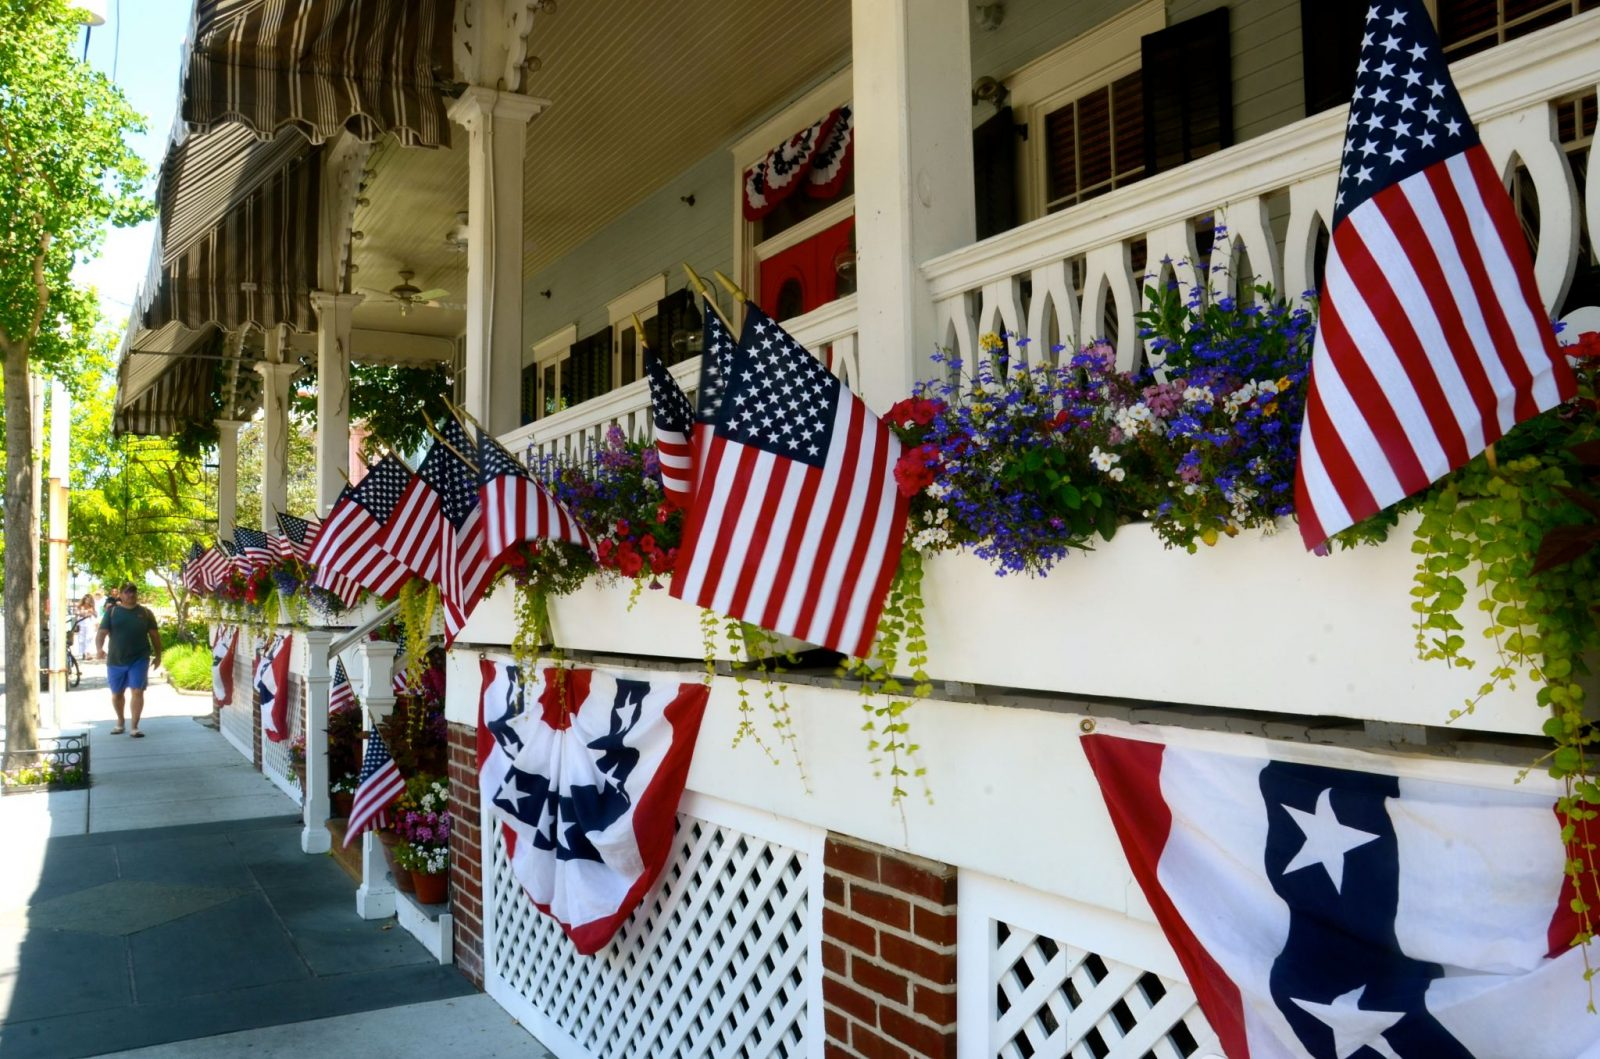 Independence Day in Cape May, NJ